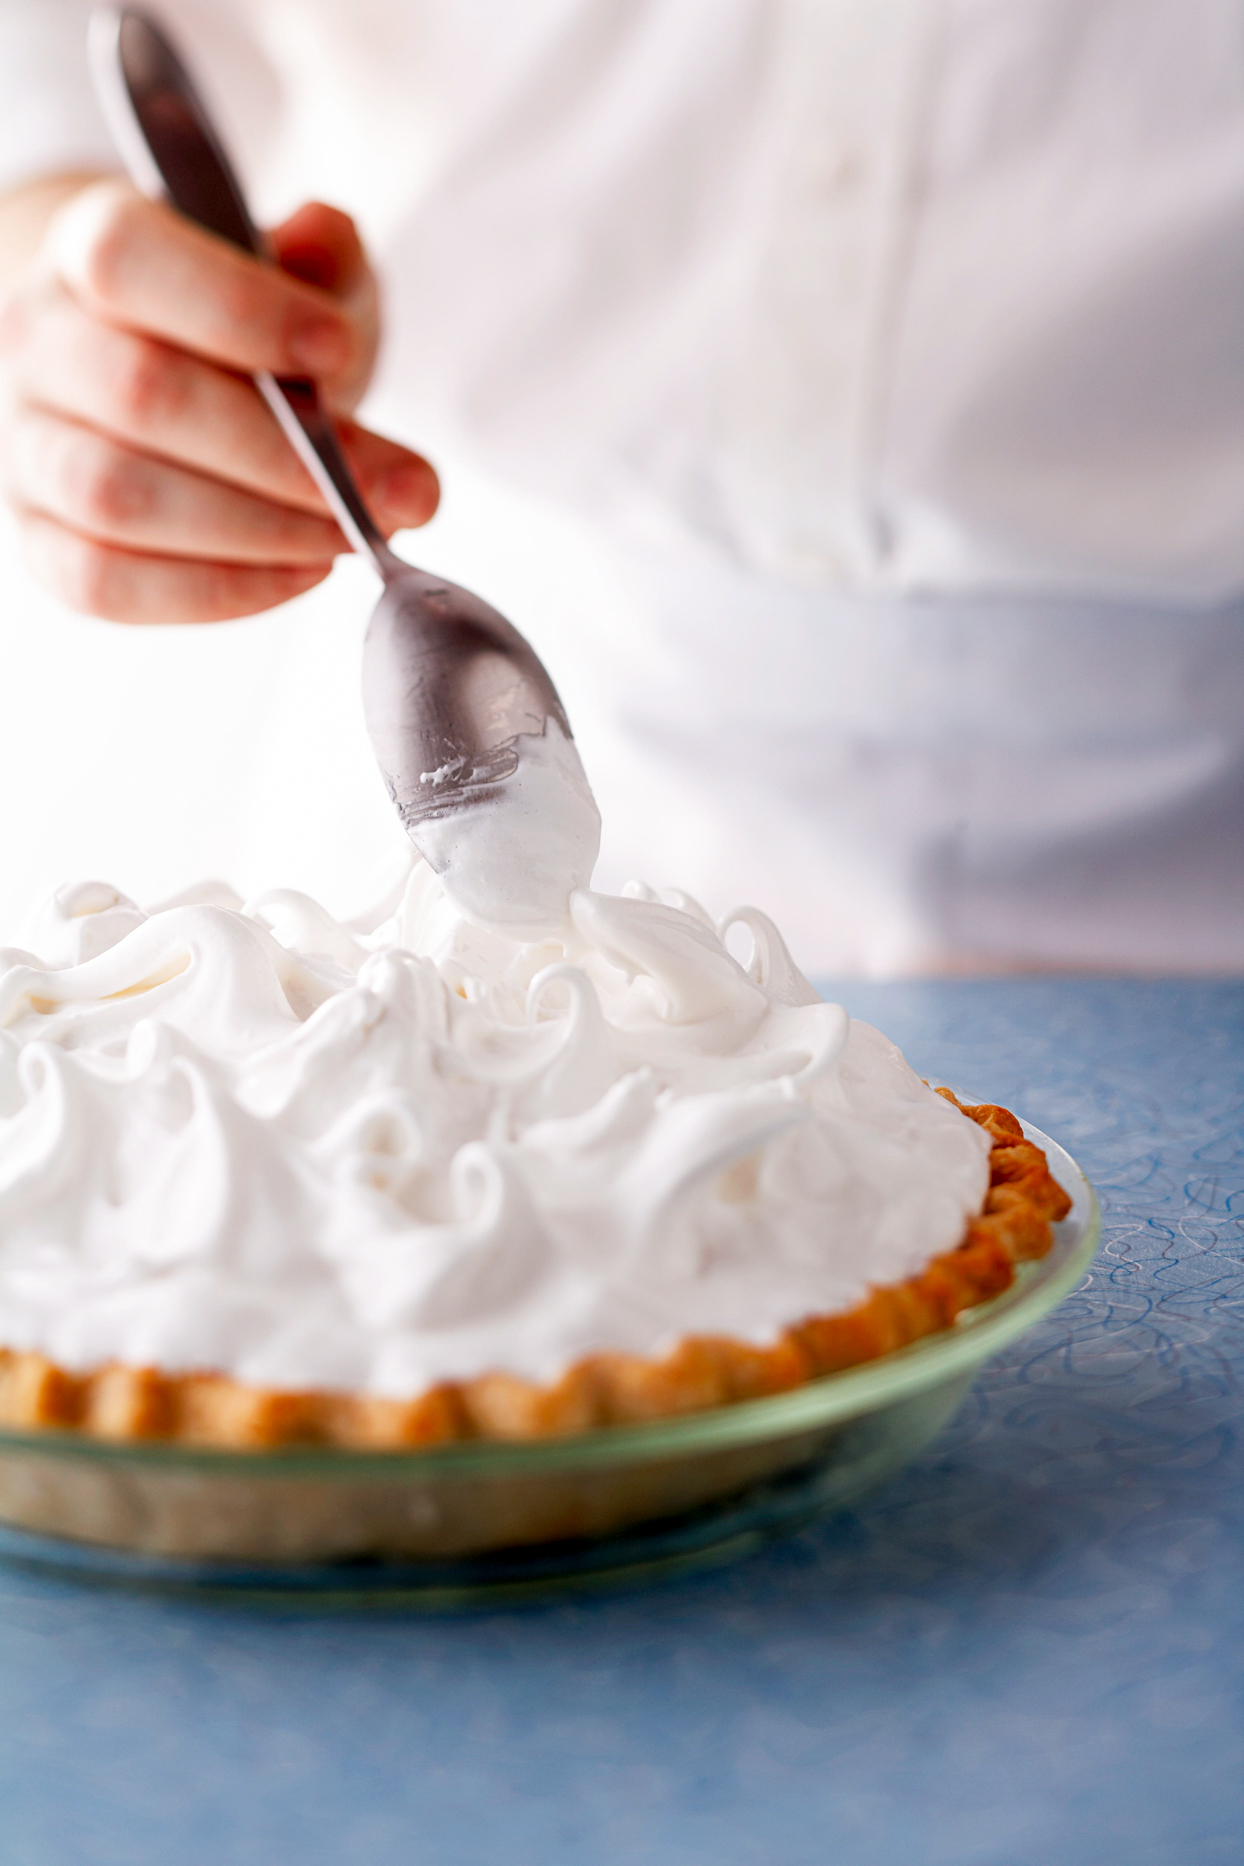 Making curly tops with meringue